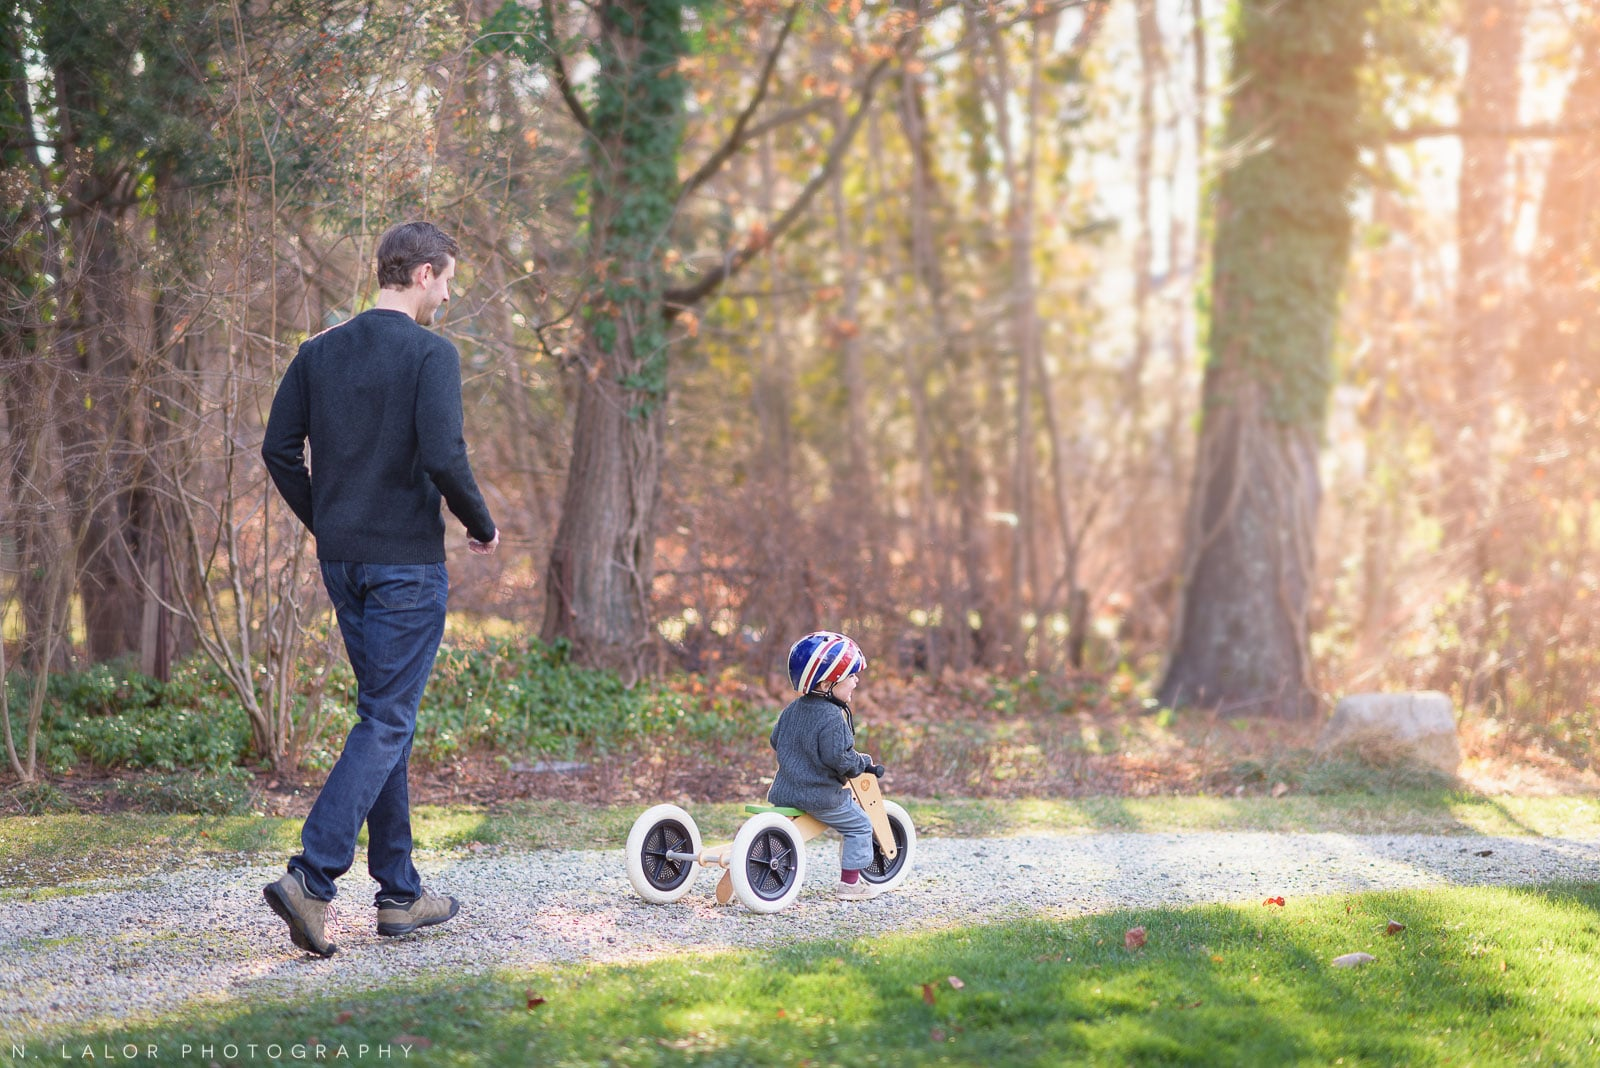 Dad with his toddler son riding a tricycle. Lifestyle portrait by N. Lalor Photography.